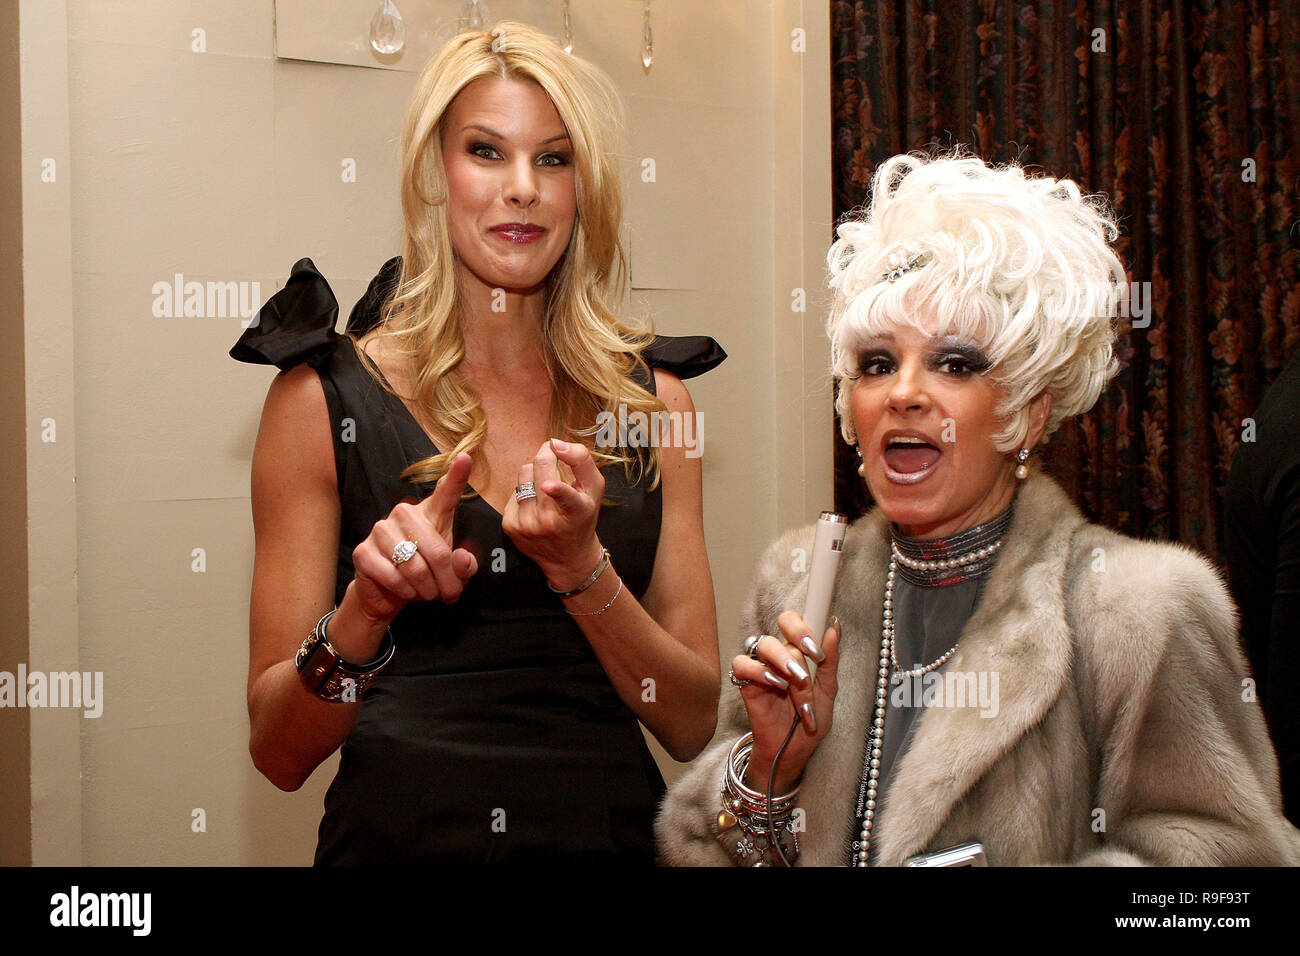 NEW YORK - FEBRUARY 12:  TV Personality Beth Ostrosky-Stern and Cognac Wellerlane attend the North Shore Animal League's Pre-Westminster Fashion Show at the Hotel Pennsylvania on February 12, 2010 in New York City.  (Photo by Steve Mack/S.D. Mack Pictures) Stock Photo